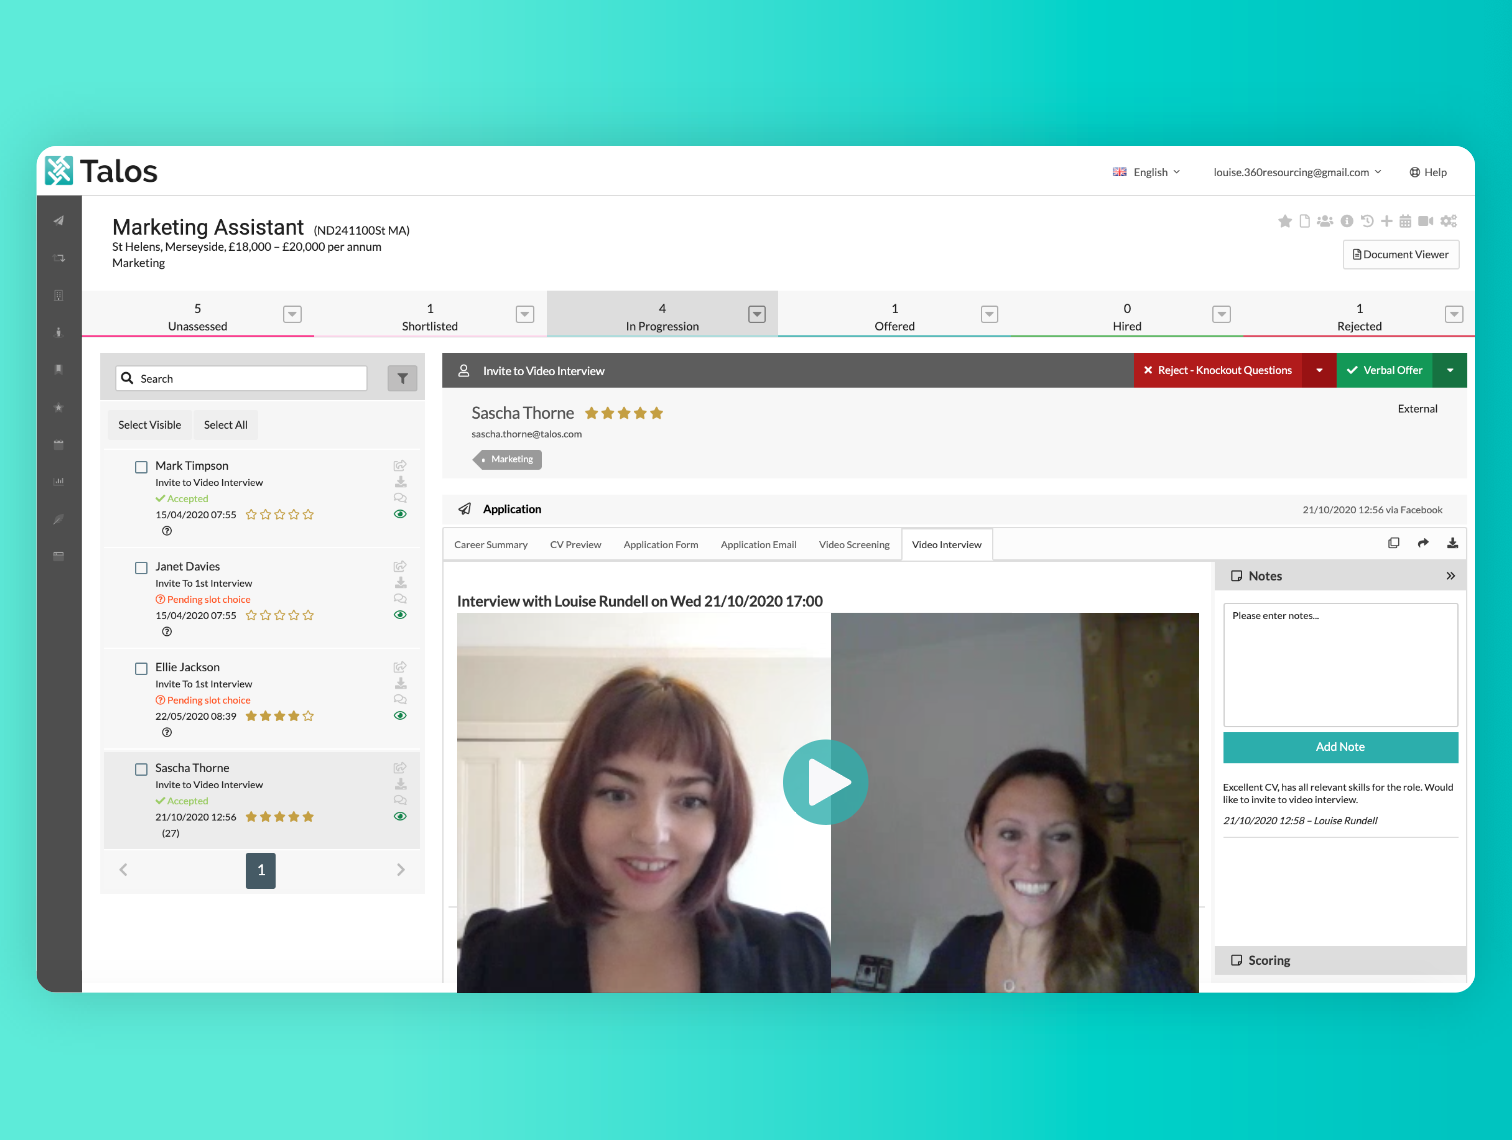 Video Interviewing & Video Screening Enabled